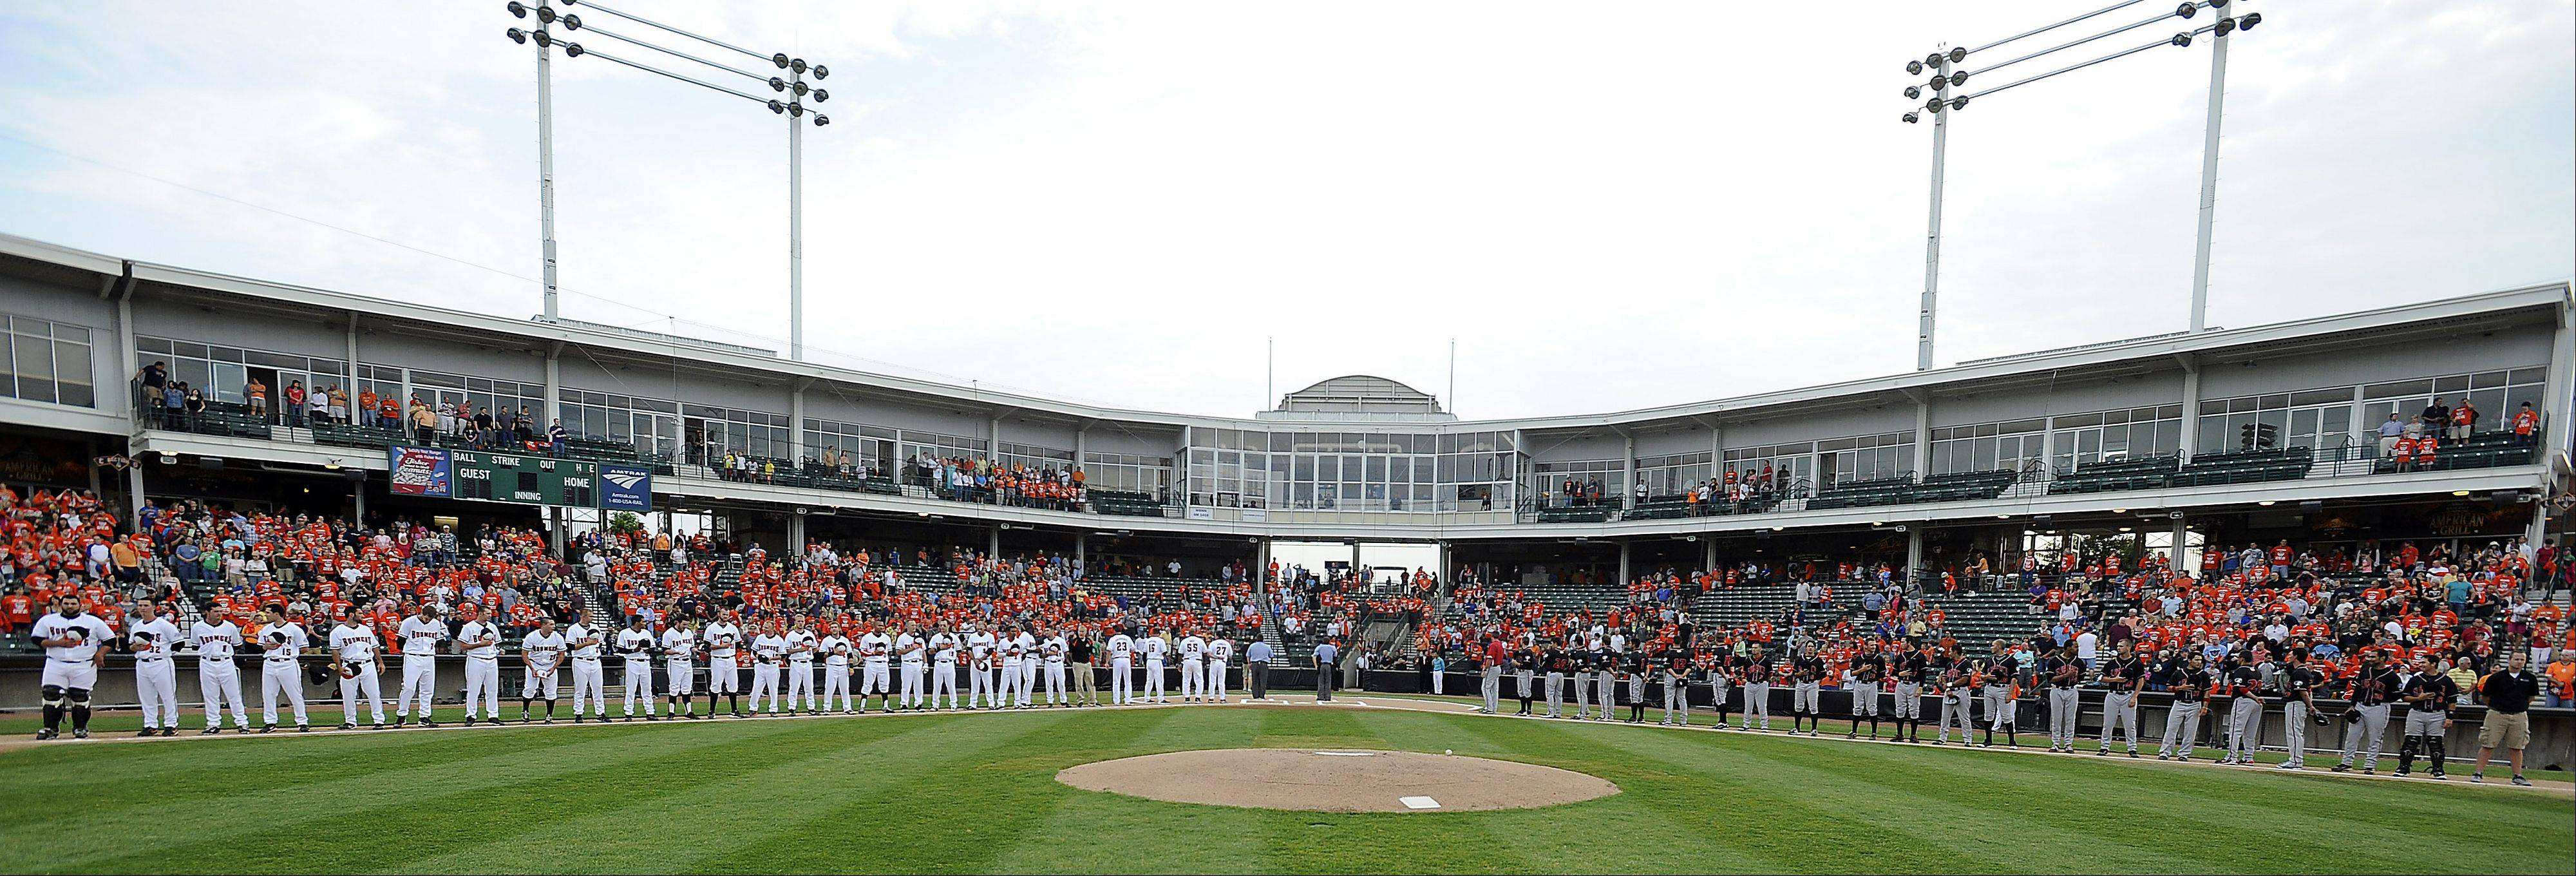 Months after winning the Frontier League title in just their second season, the Schaumburg Boomers are renewing efforts to sell naming rights for their ballpark, now known Boomers Stadium. The stadium was called Alexian Field when it hosted the now defunct Schaumburg Flyers.